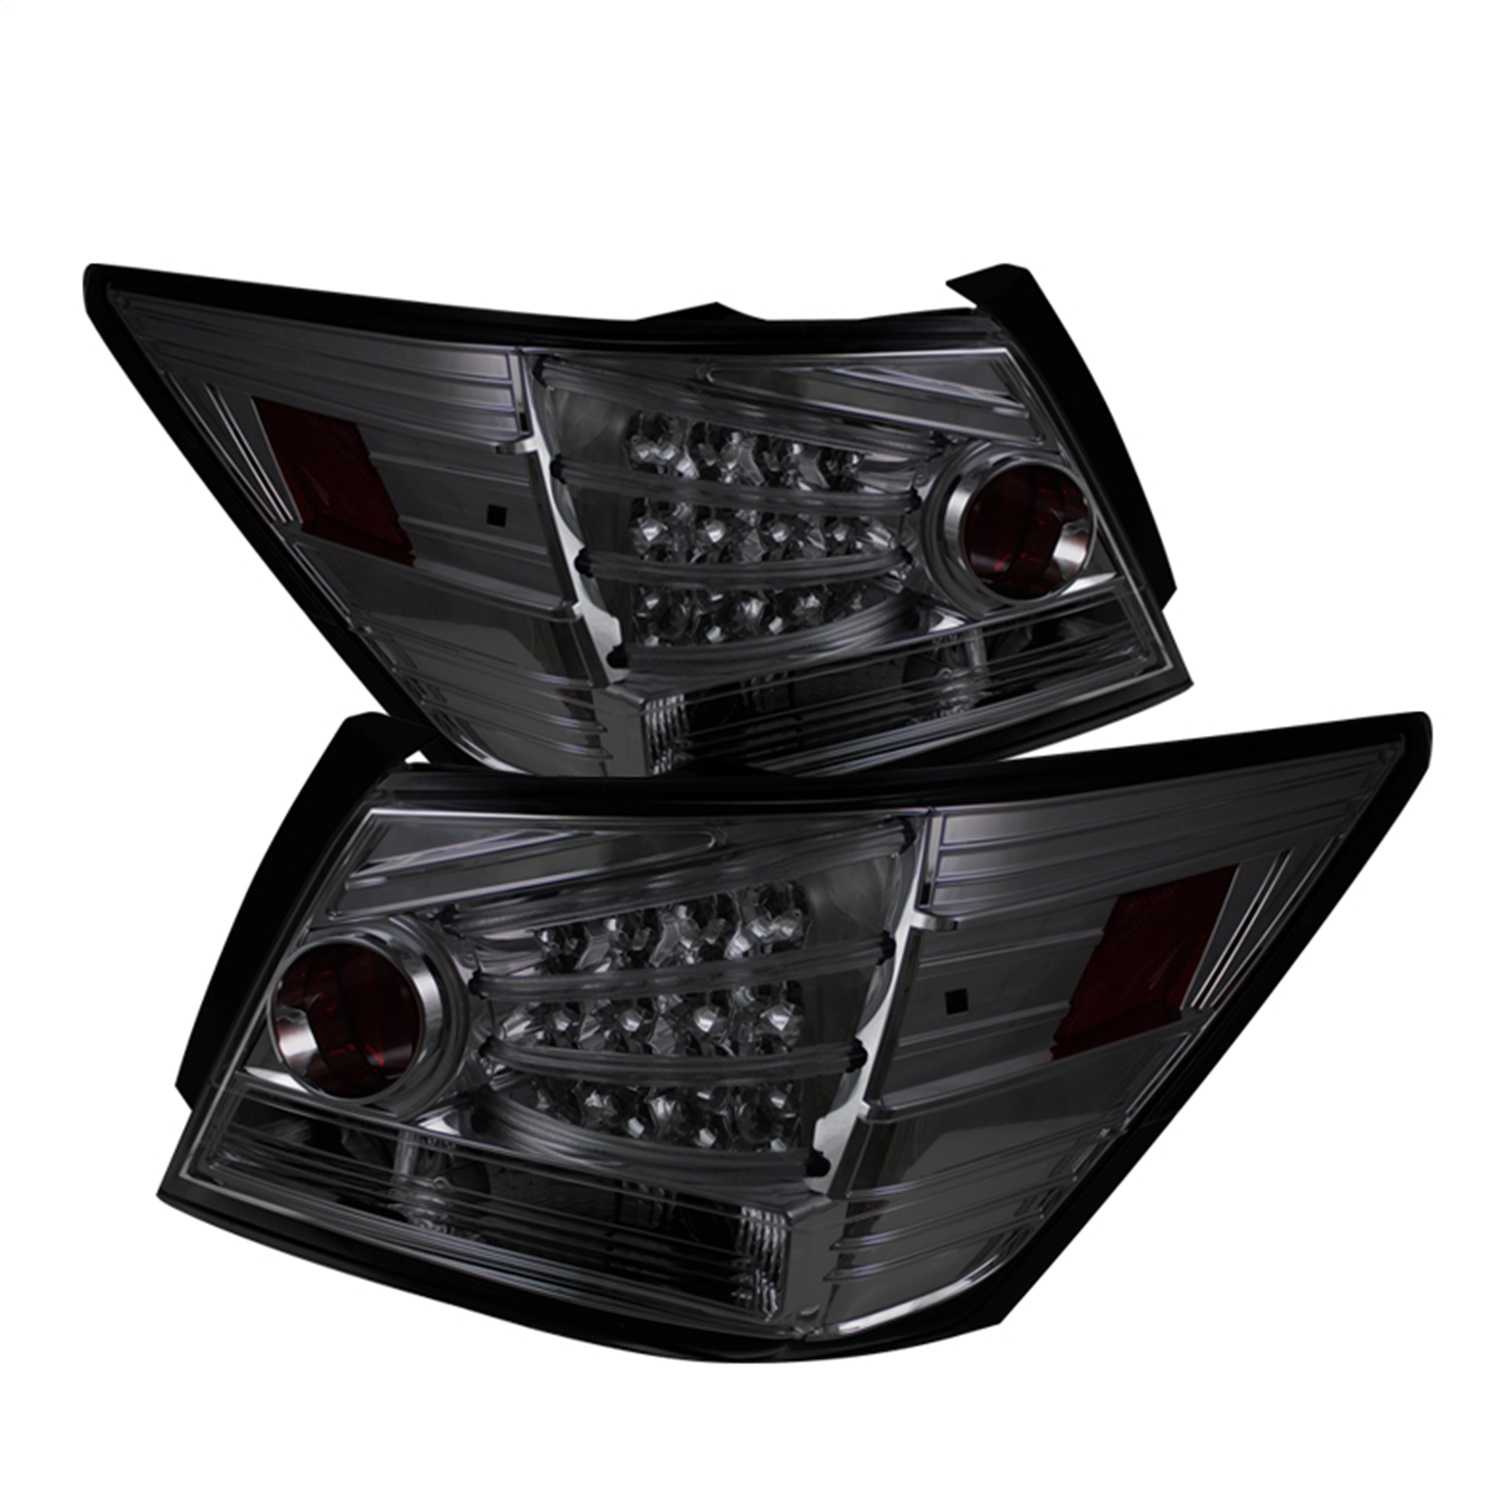 Spyder Auto 5032645 LED Tail Lights Fits 08-12 Accord